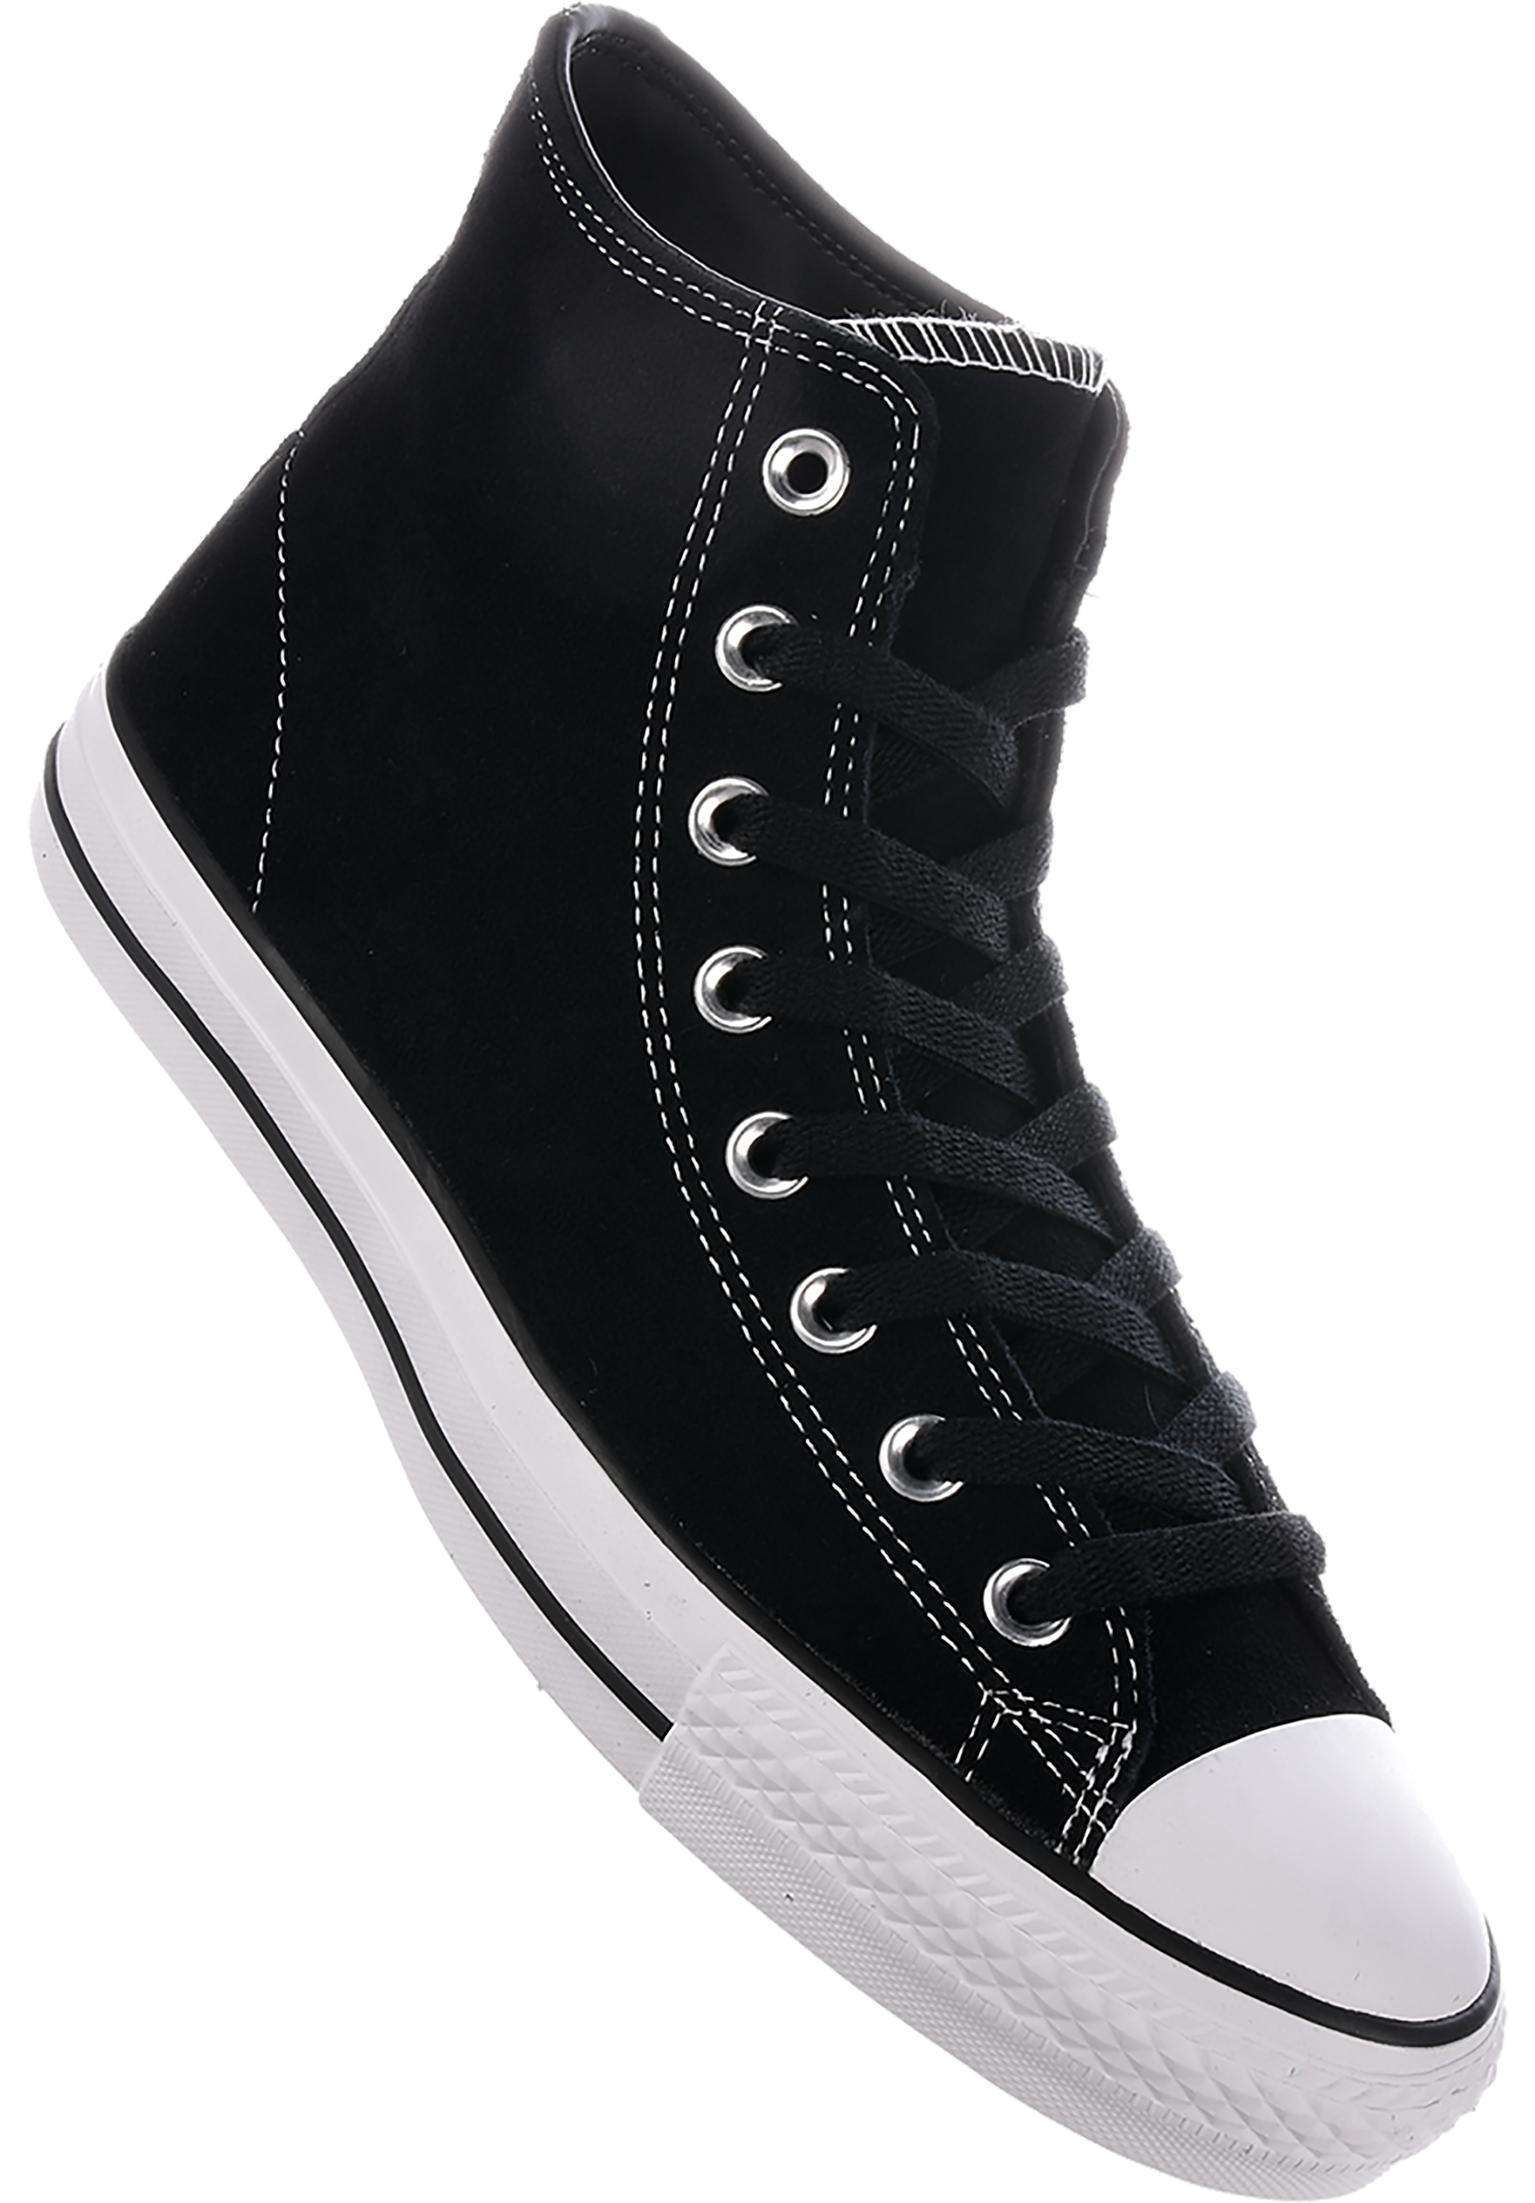 6626be56b0ea CTAS Pro Suede Hi Converse CONS All Shoes in black-black-white for Men